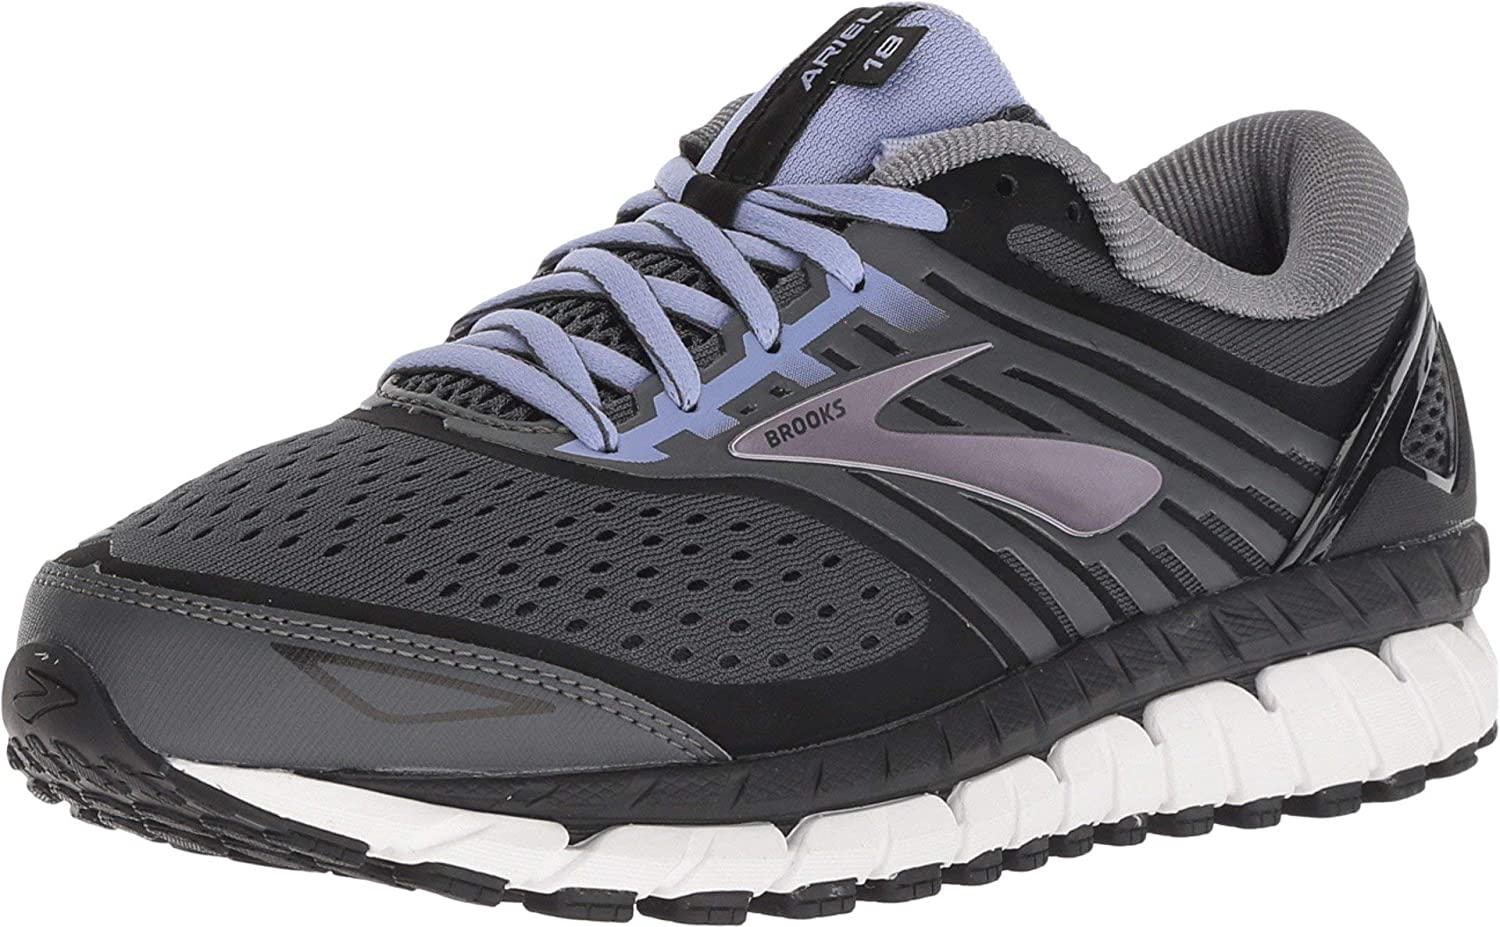 Brooks Womens Ariel /'18 Running Shoes Trainers Sneakers Grey Pink Sports